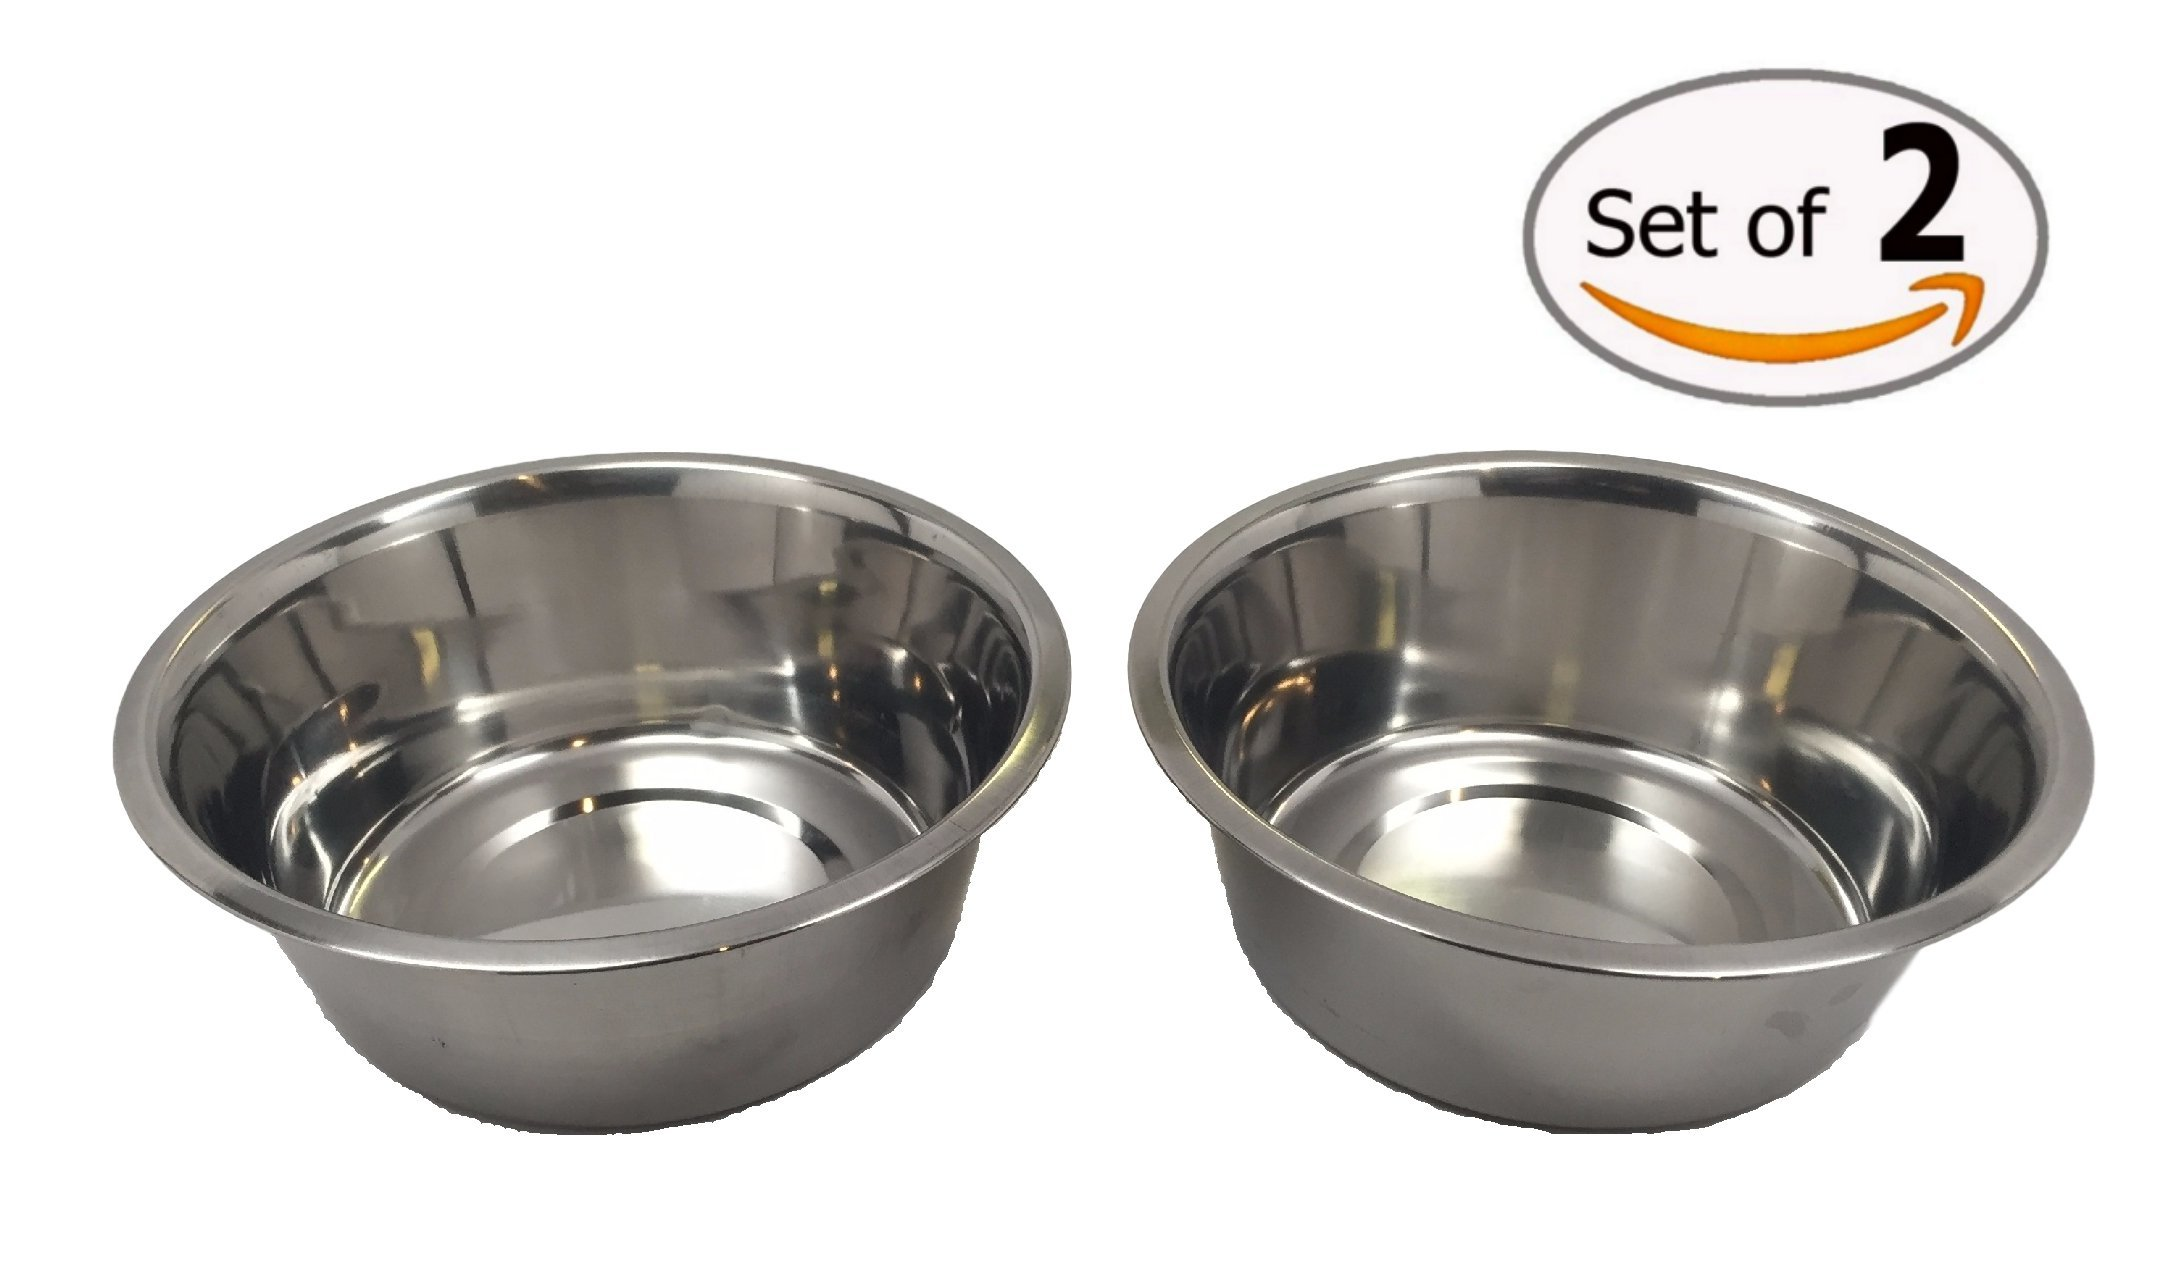 Stainless Steel Dog Bowl Set, 8'' Large, 64oz/2-Quart, Two Bowls One Low Price! Without Sticker.